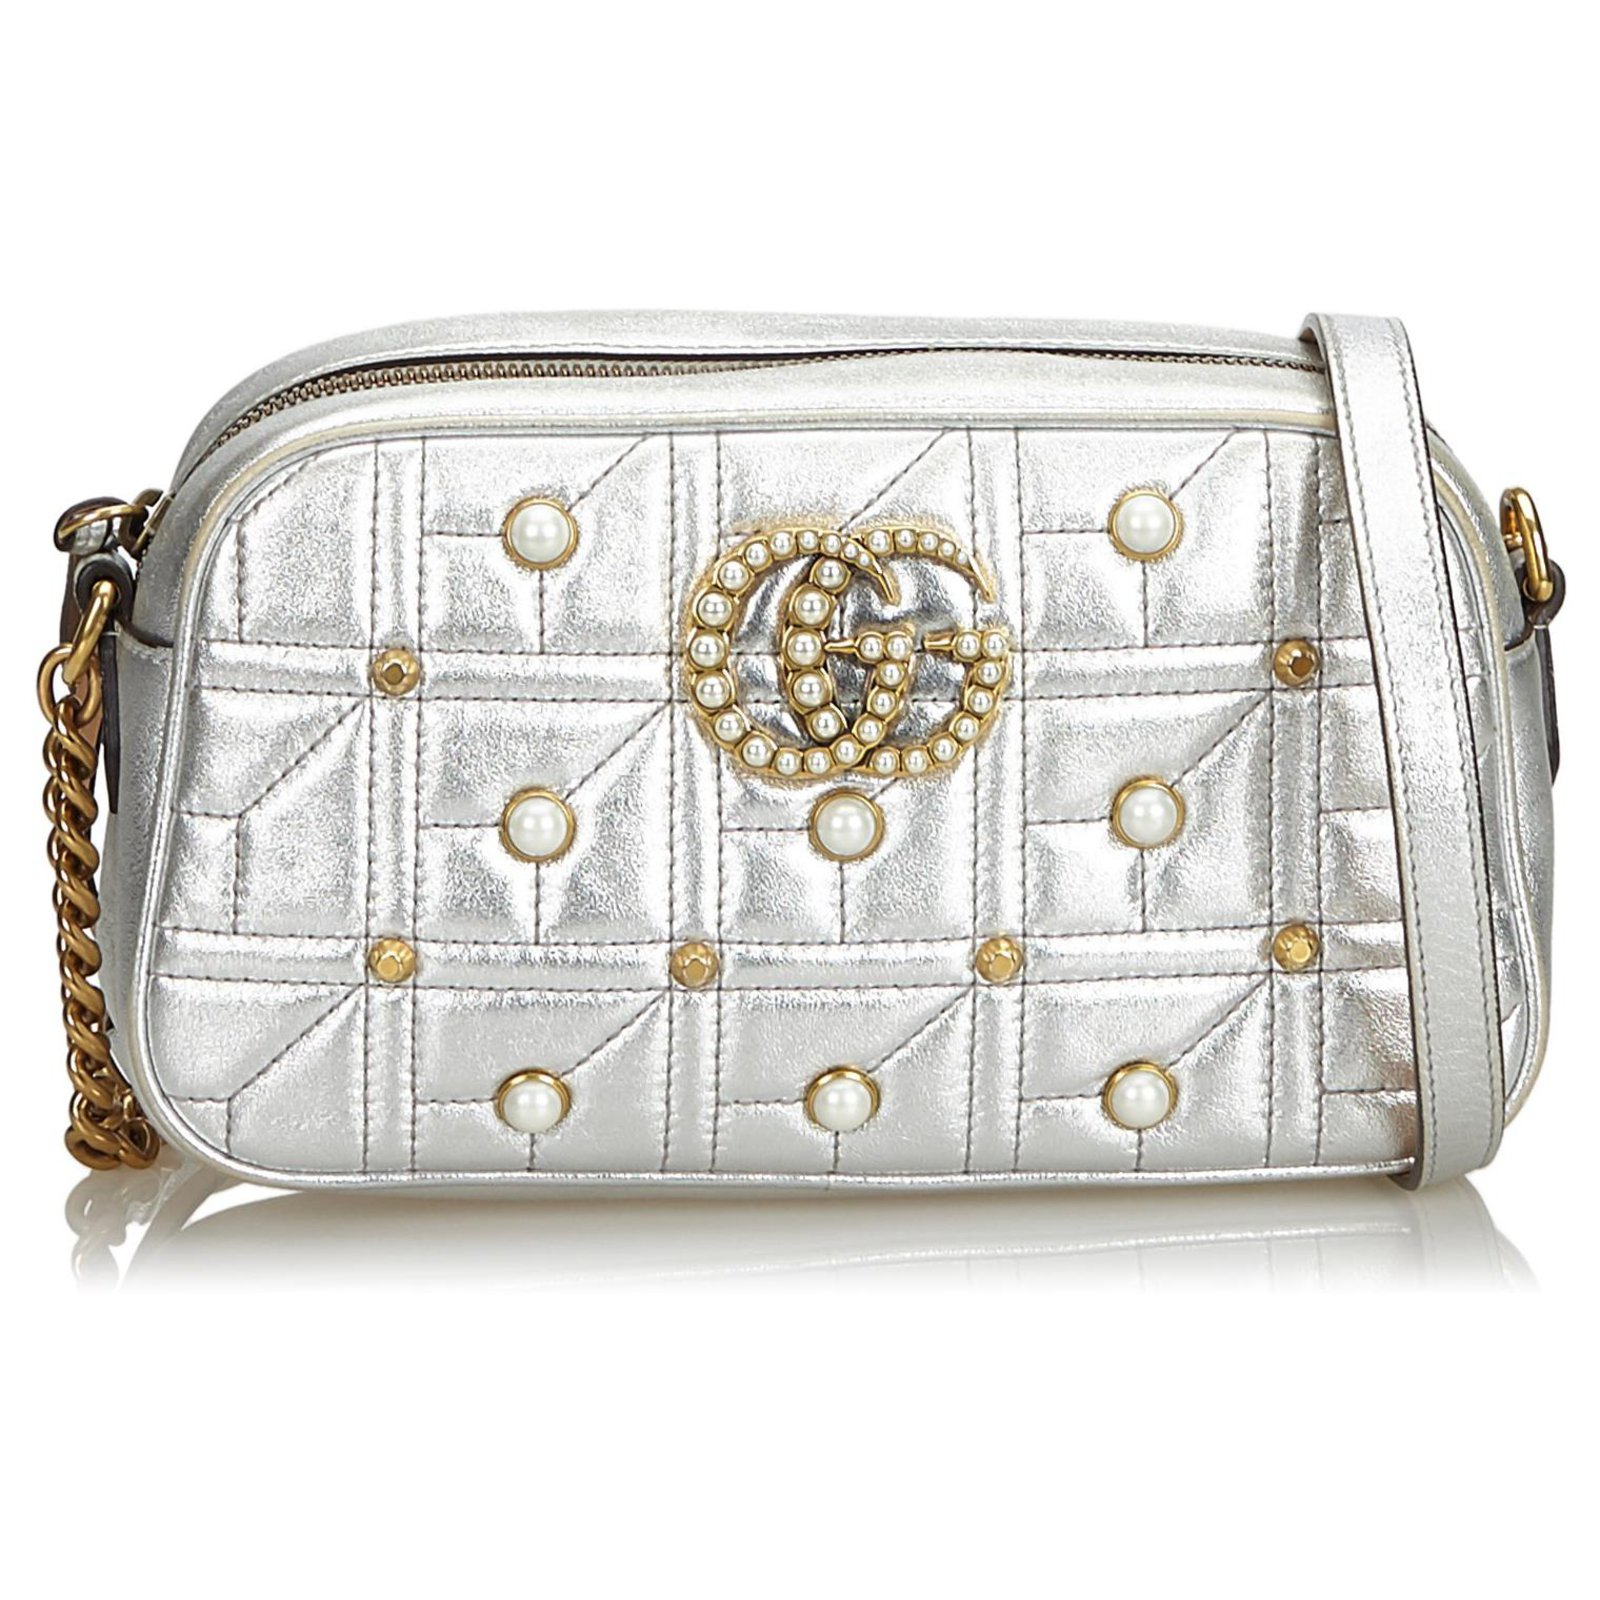 eb24c8b62103 Gucci Gucci Silver GG Pearl Studded Leather Marmont Crossbody Bag Handbags  Leather,Other Silvery,